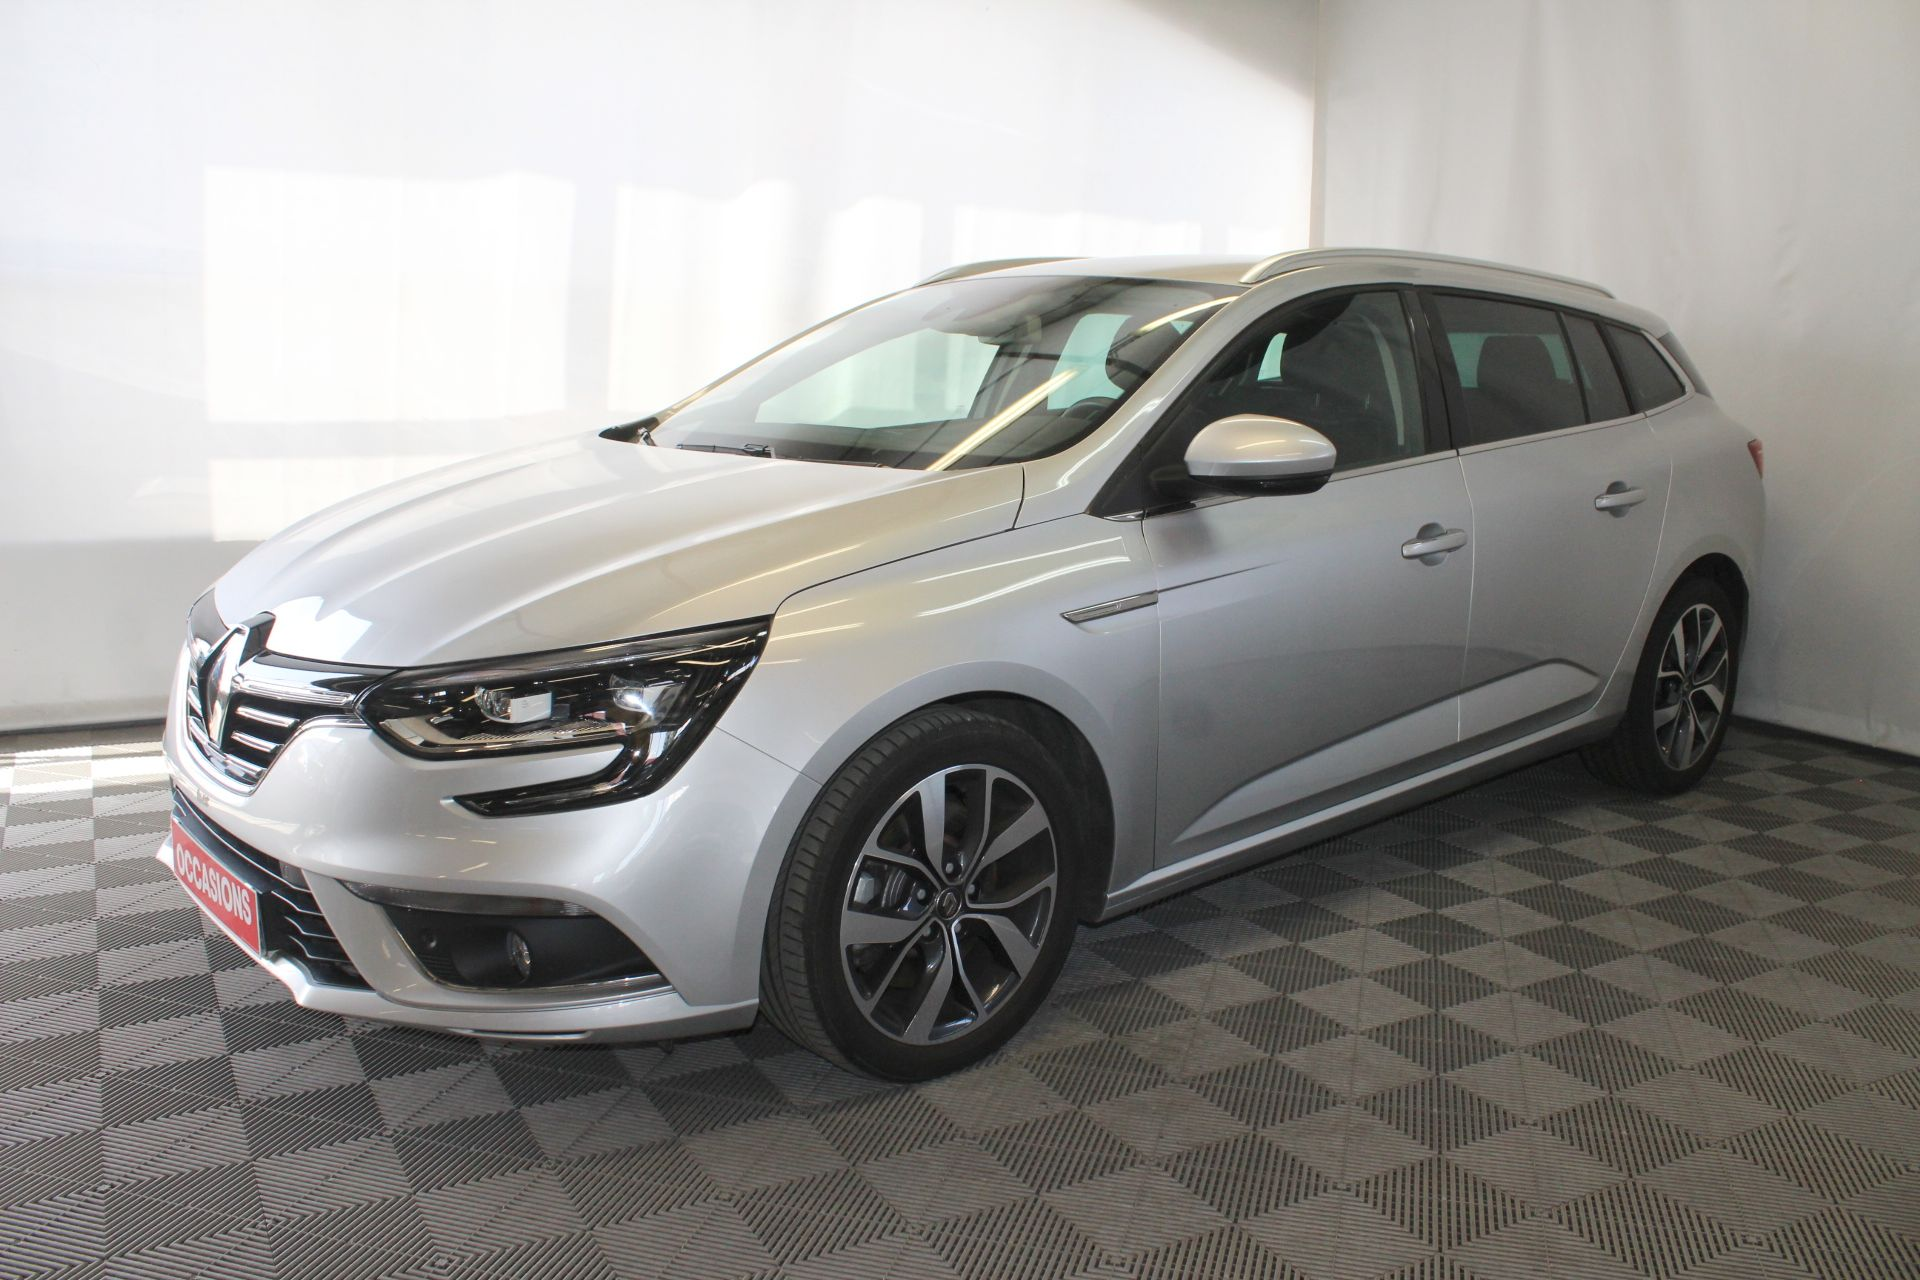 RENAULT MEGANE IV ESTATE dCi 165 Energy EDC Intens d'occasion